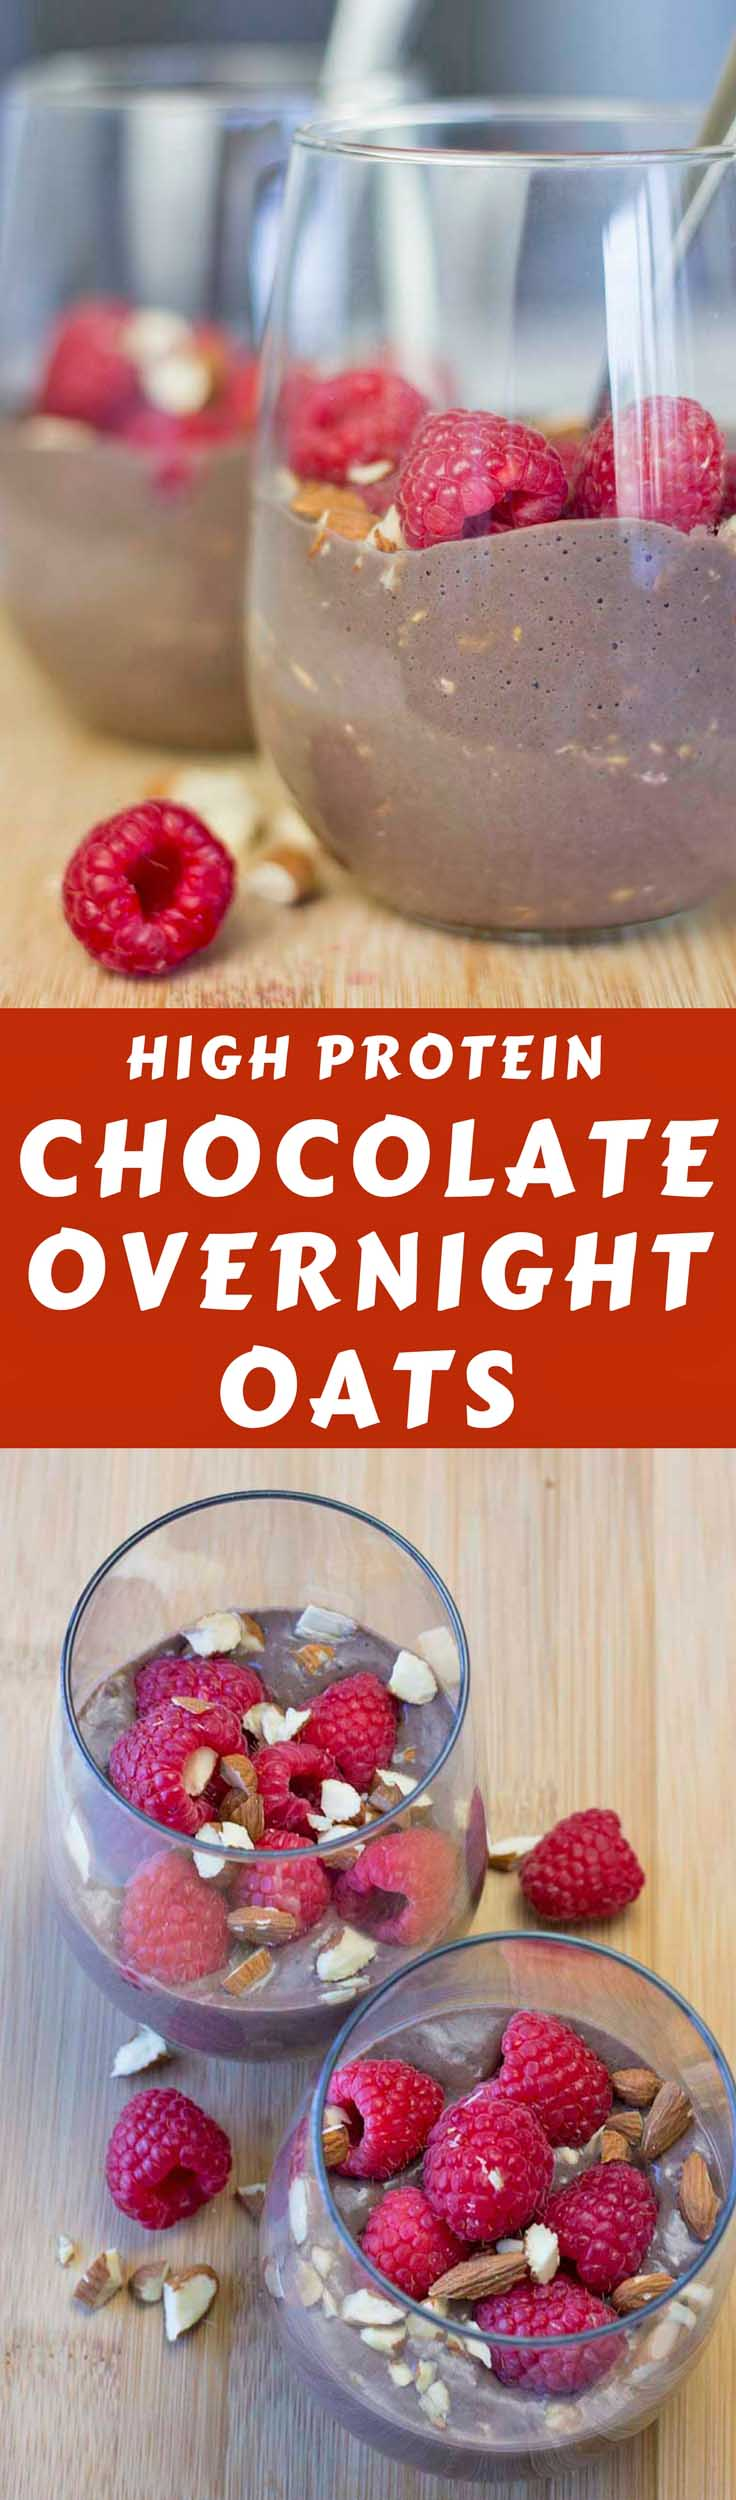 This is a delicious overnight oats recipe! High Protein Overnight Oats with Almond Milk is high in protein, sugar-free, and full of flavor. #overnightoatsrecipe #breakfast